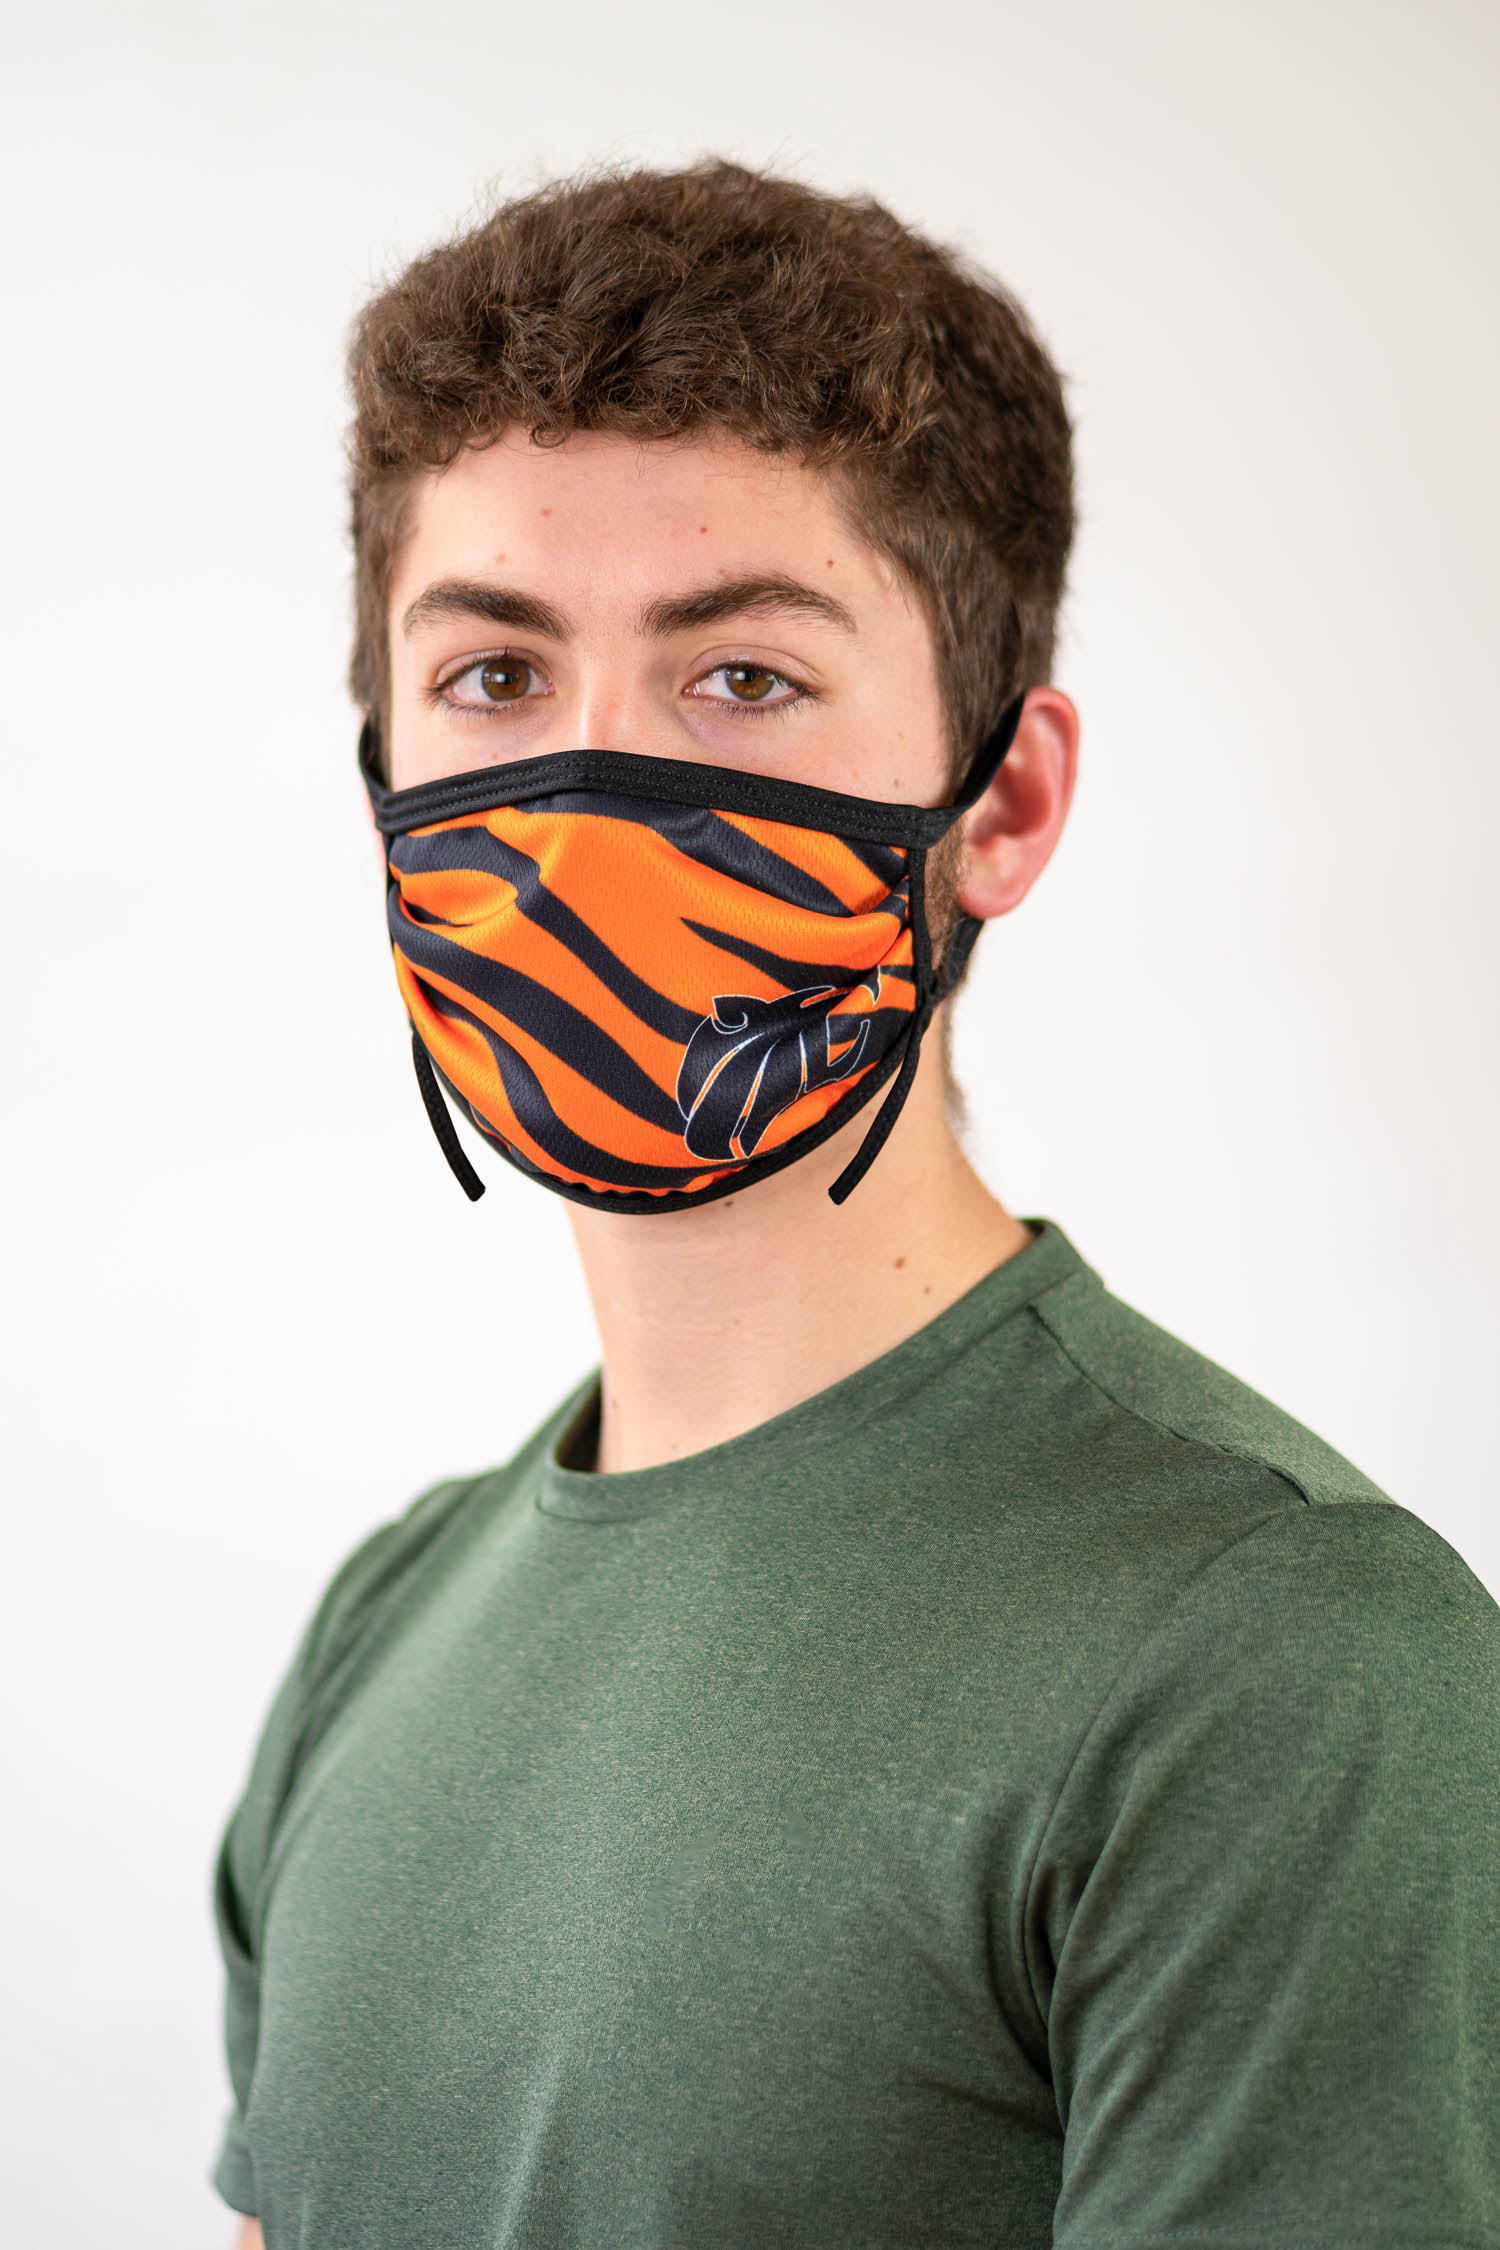 Sublimated face mask with tiger design.